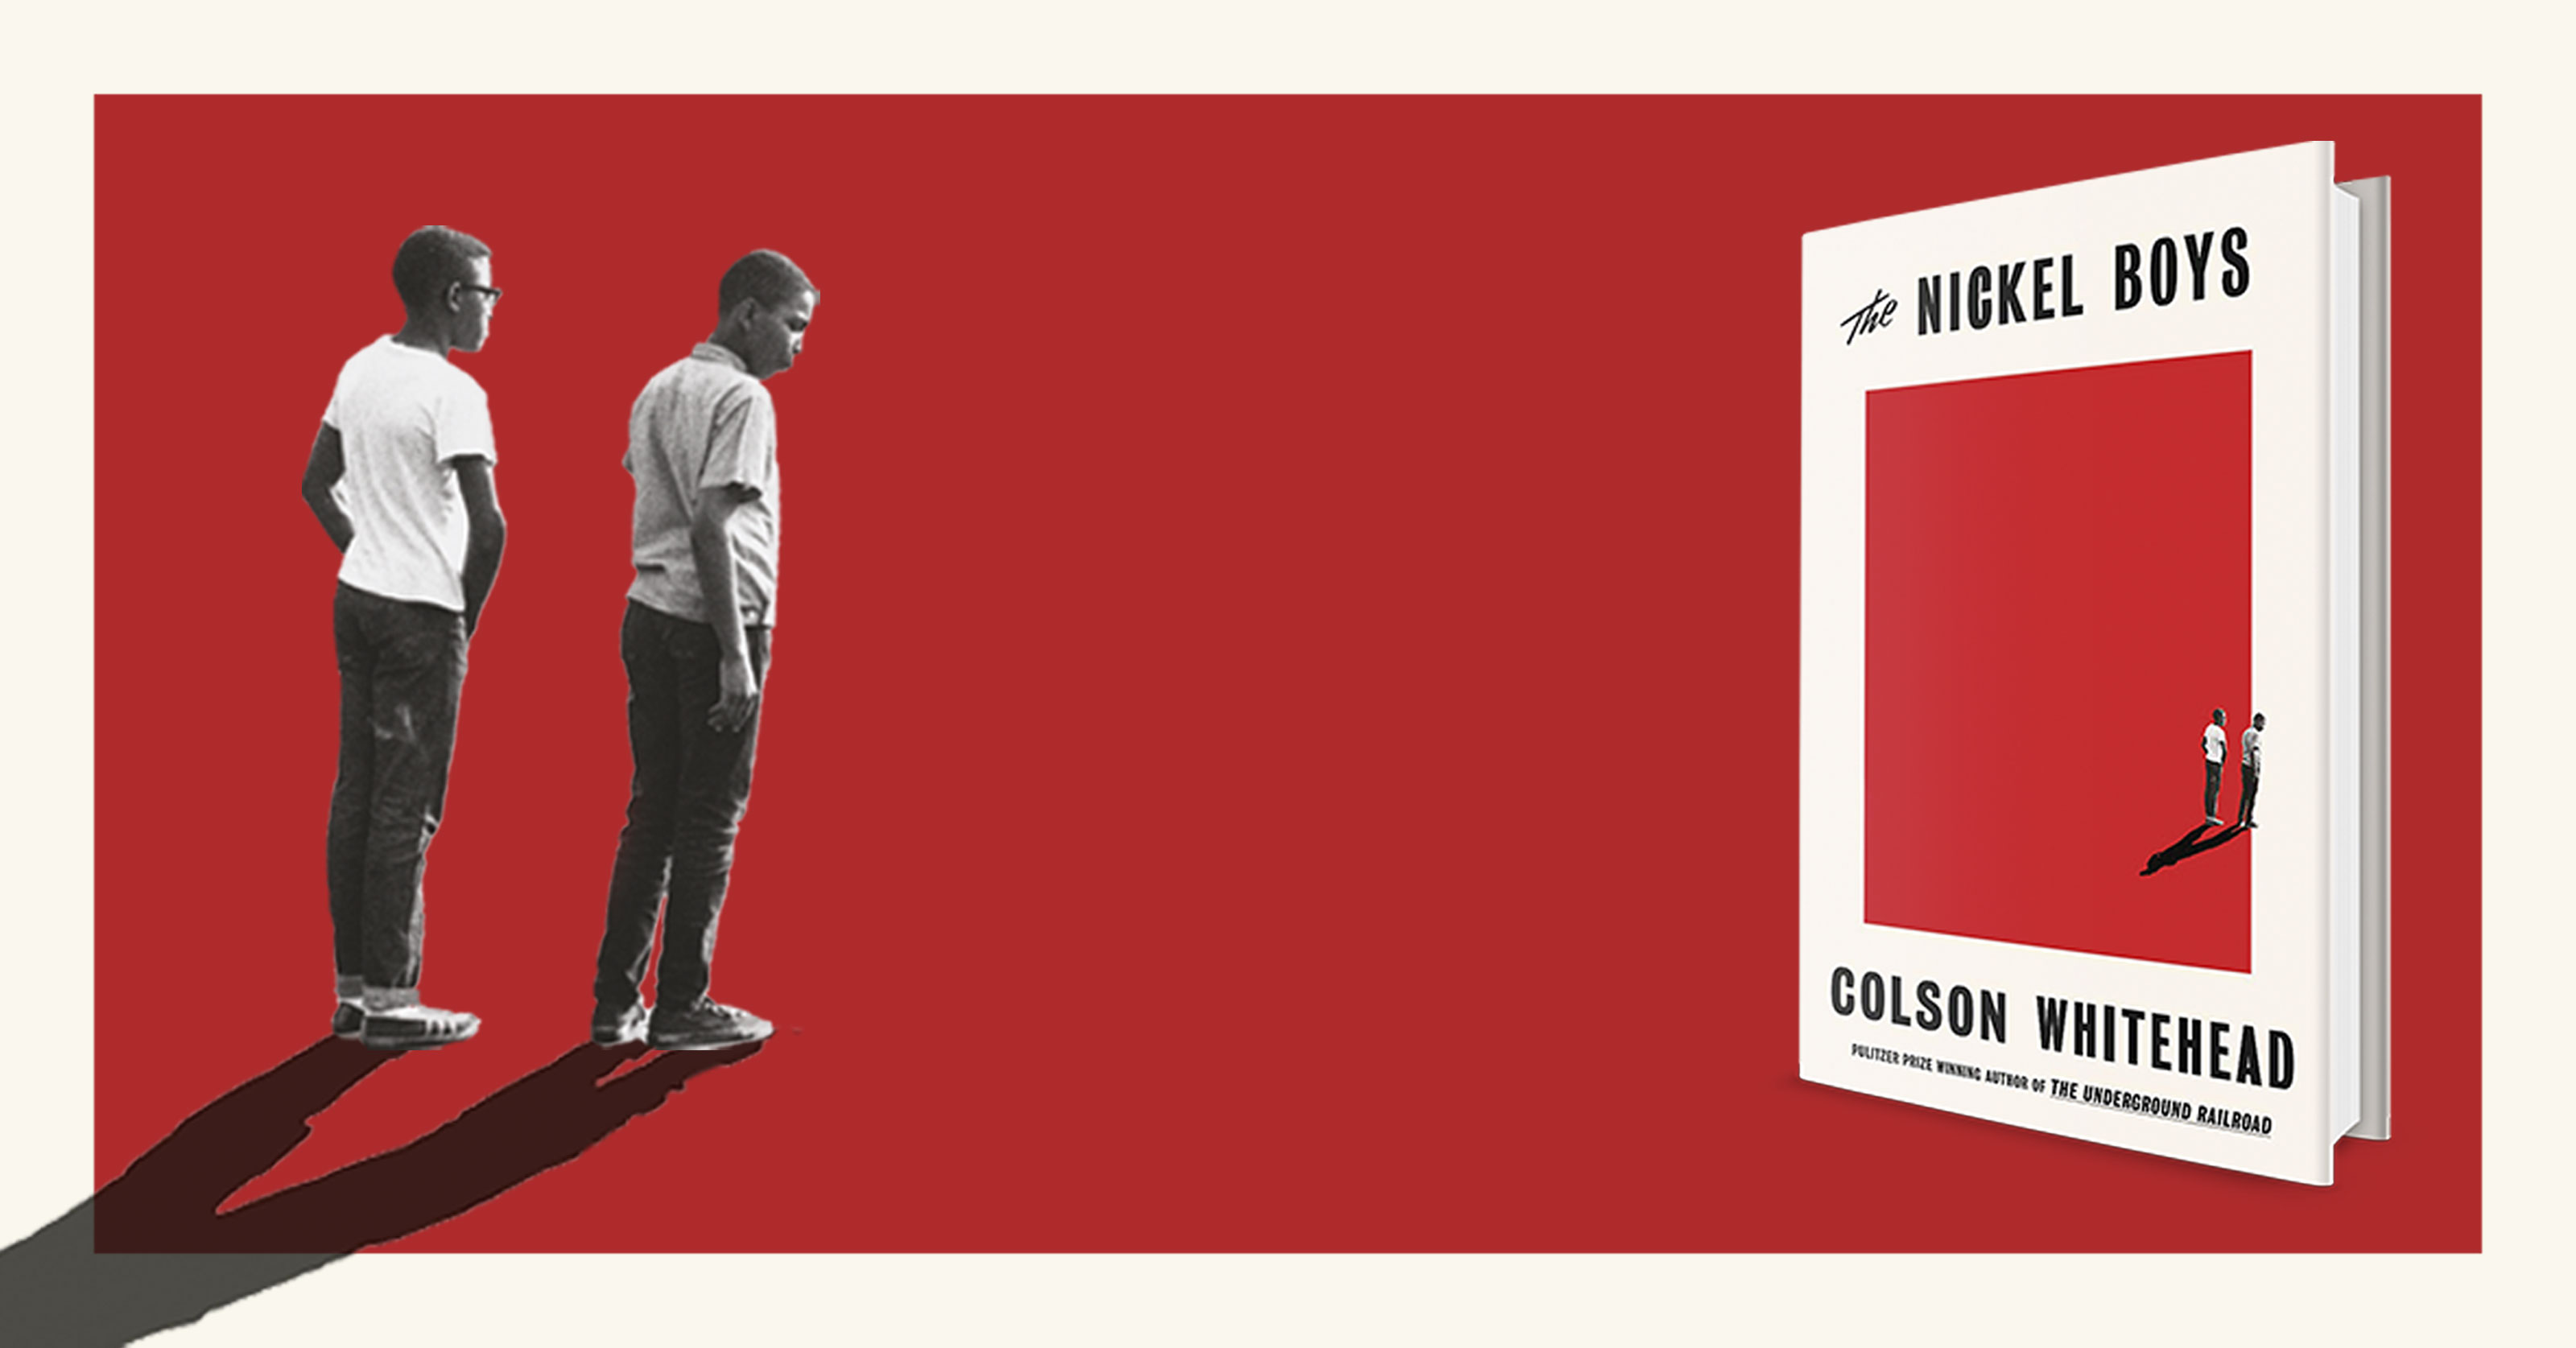 Read an extract from The Nickel Boys by Colson Whitehead   Hachette UK